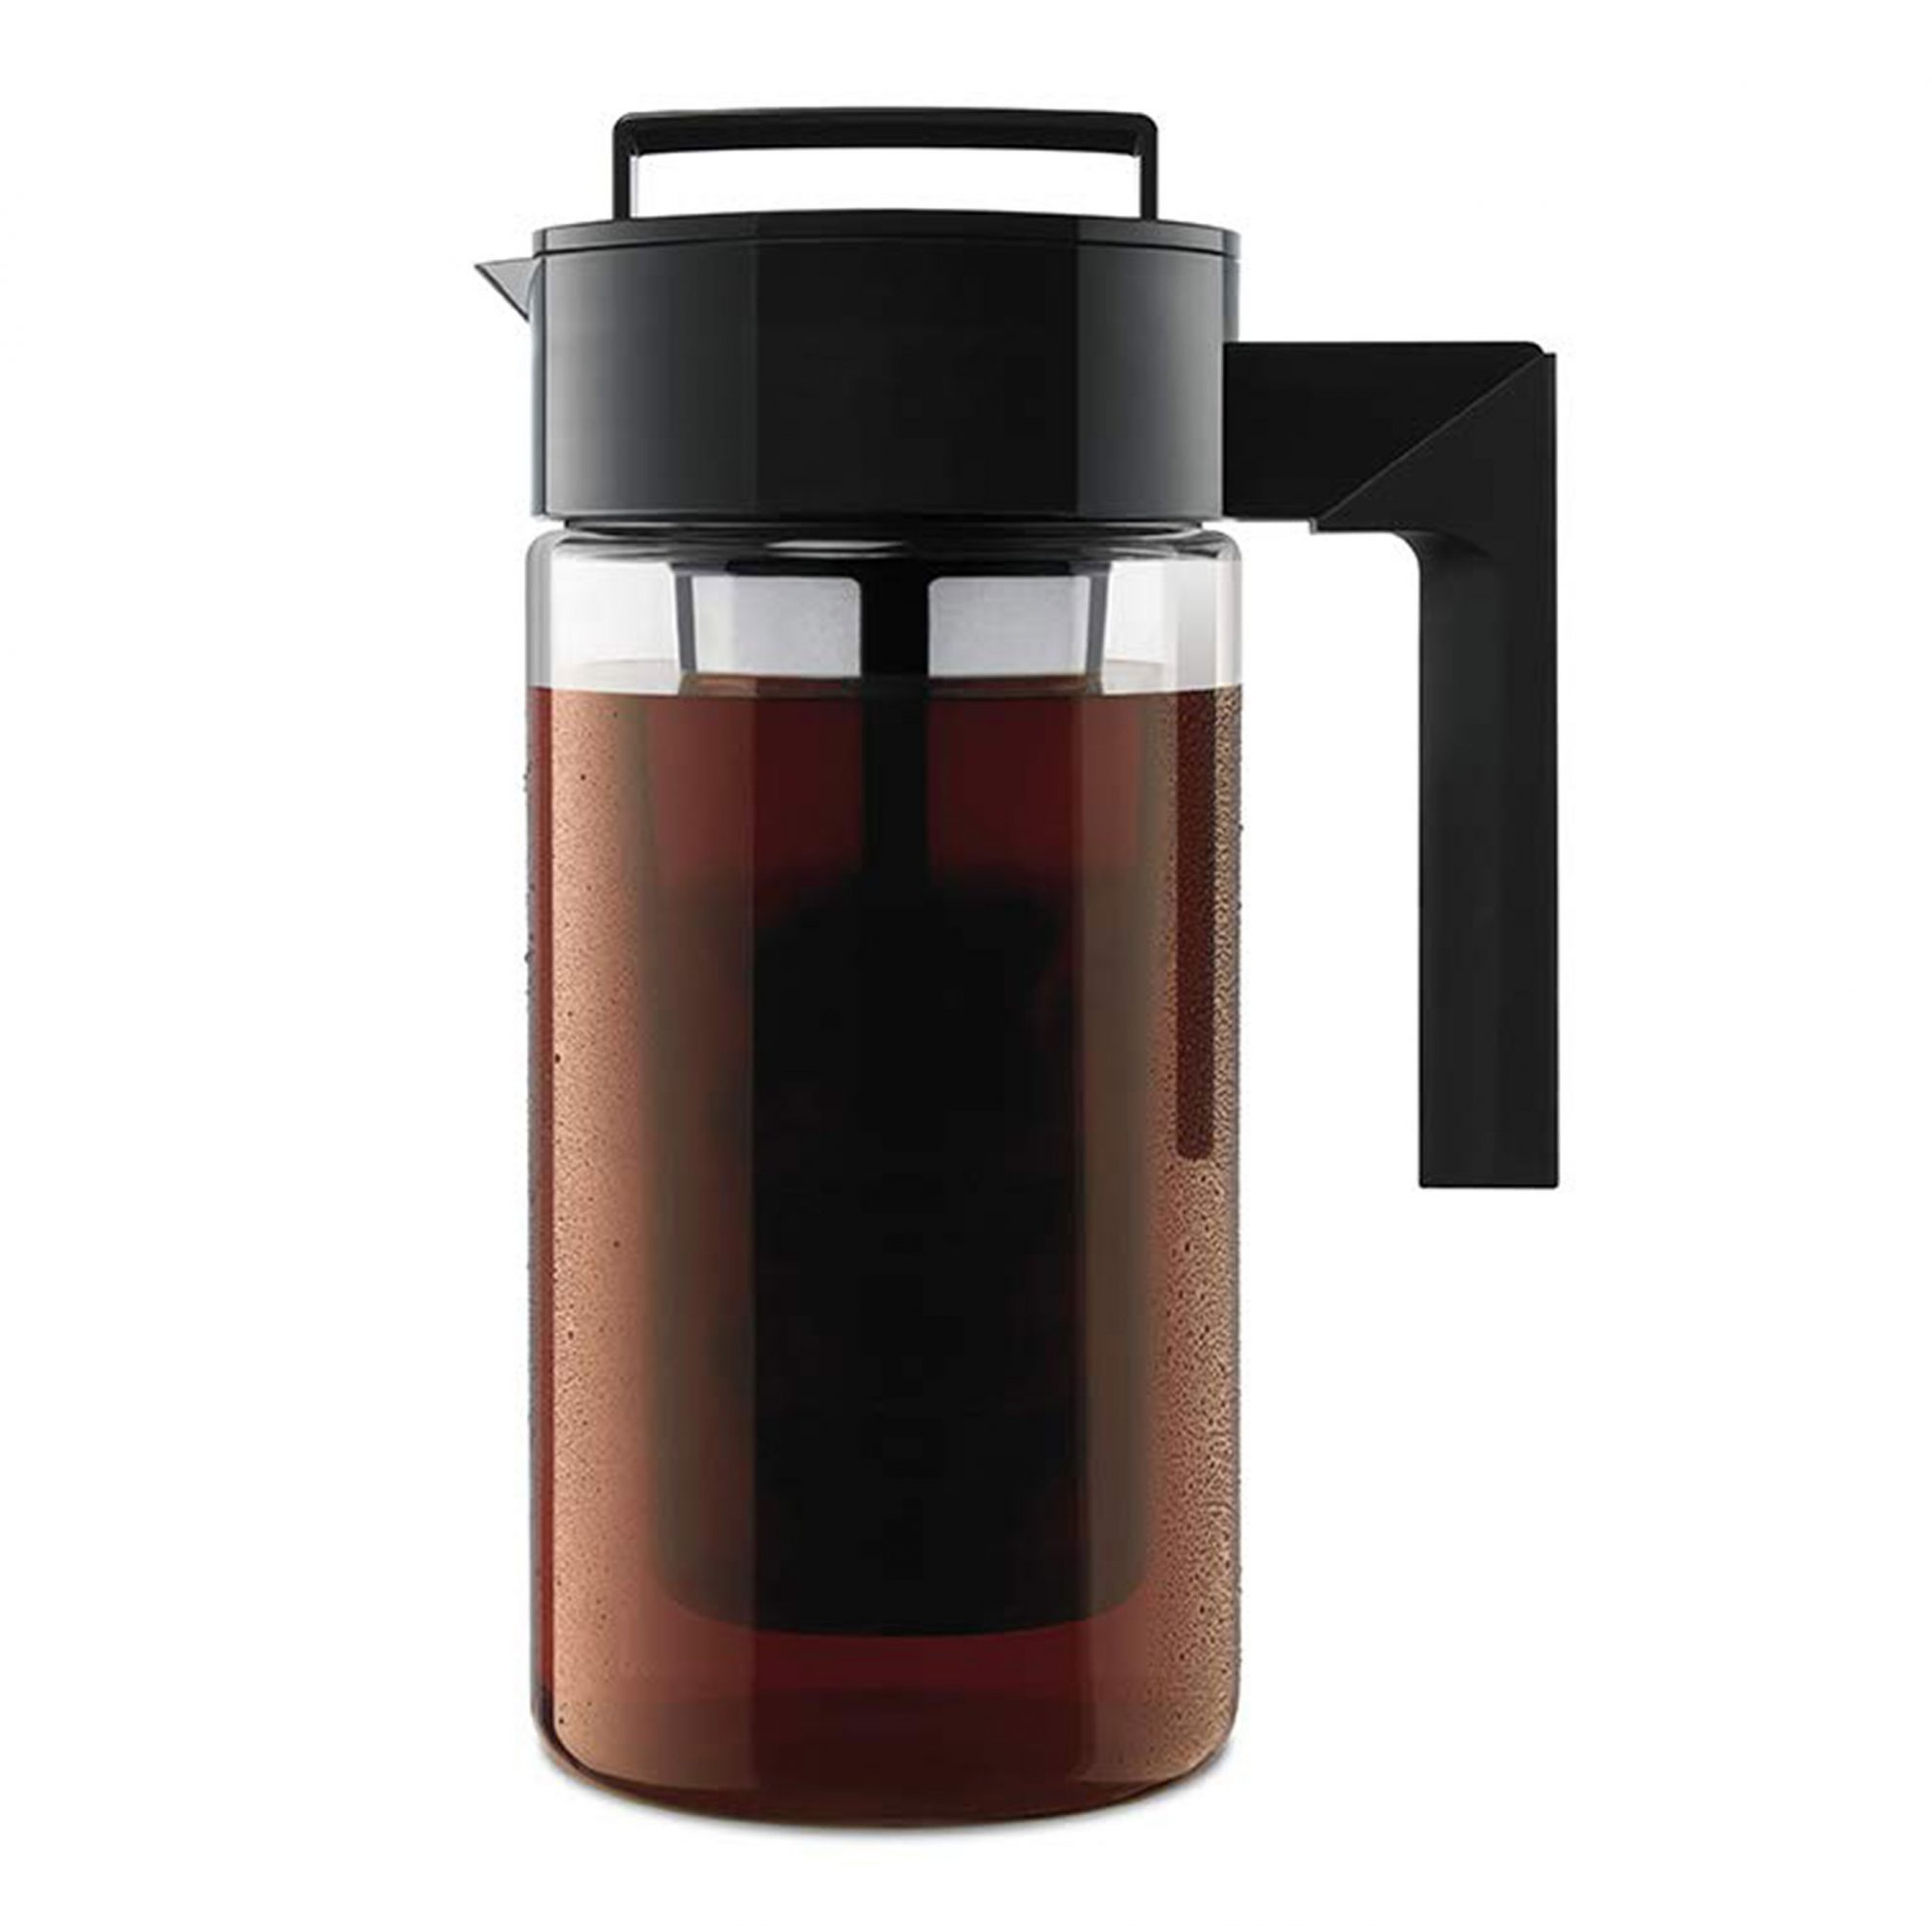 most popular kitchen tools amazon cold brew coffee maker